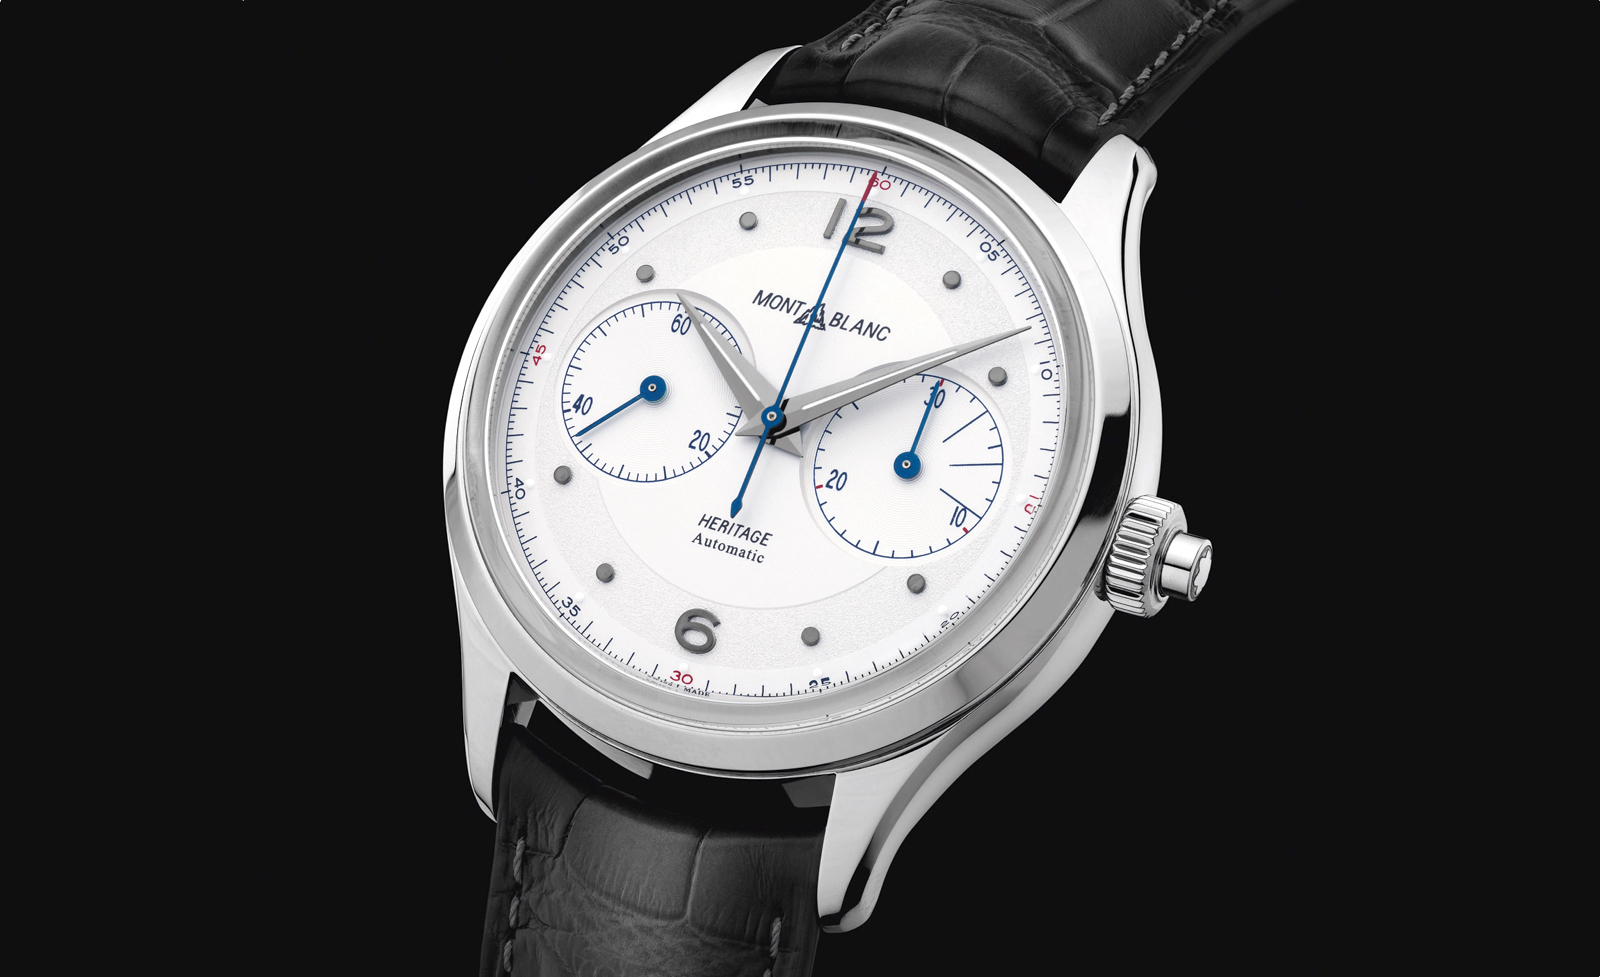 Montblanc Heritage Monopusher Chronograph SIHH 2019